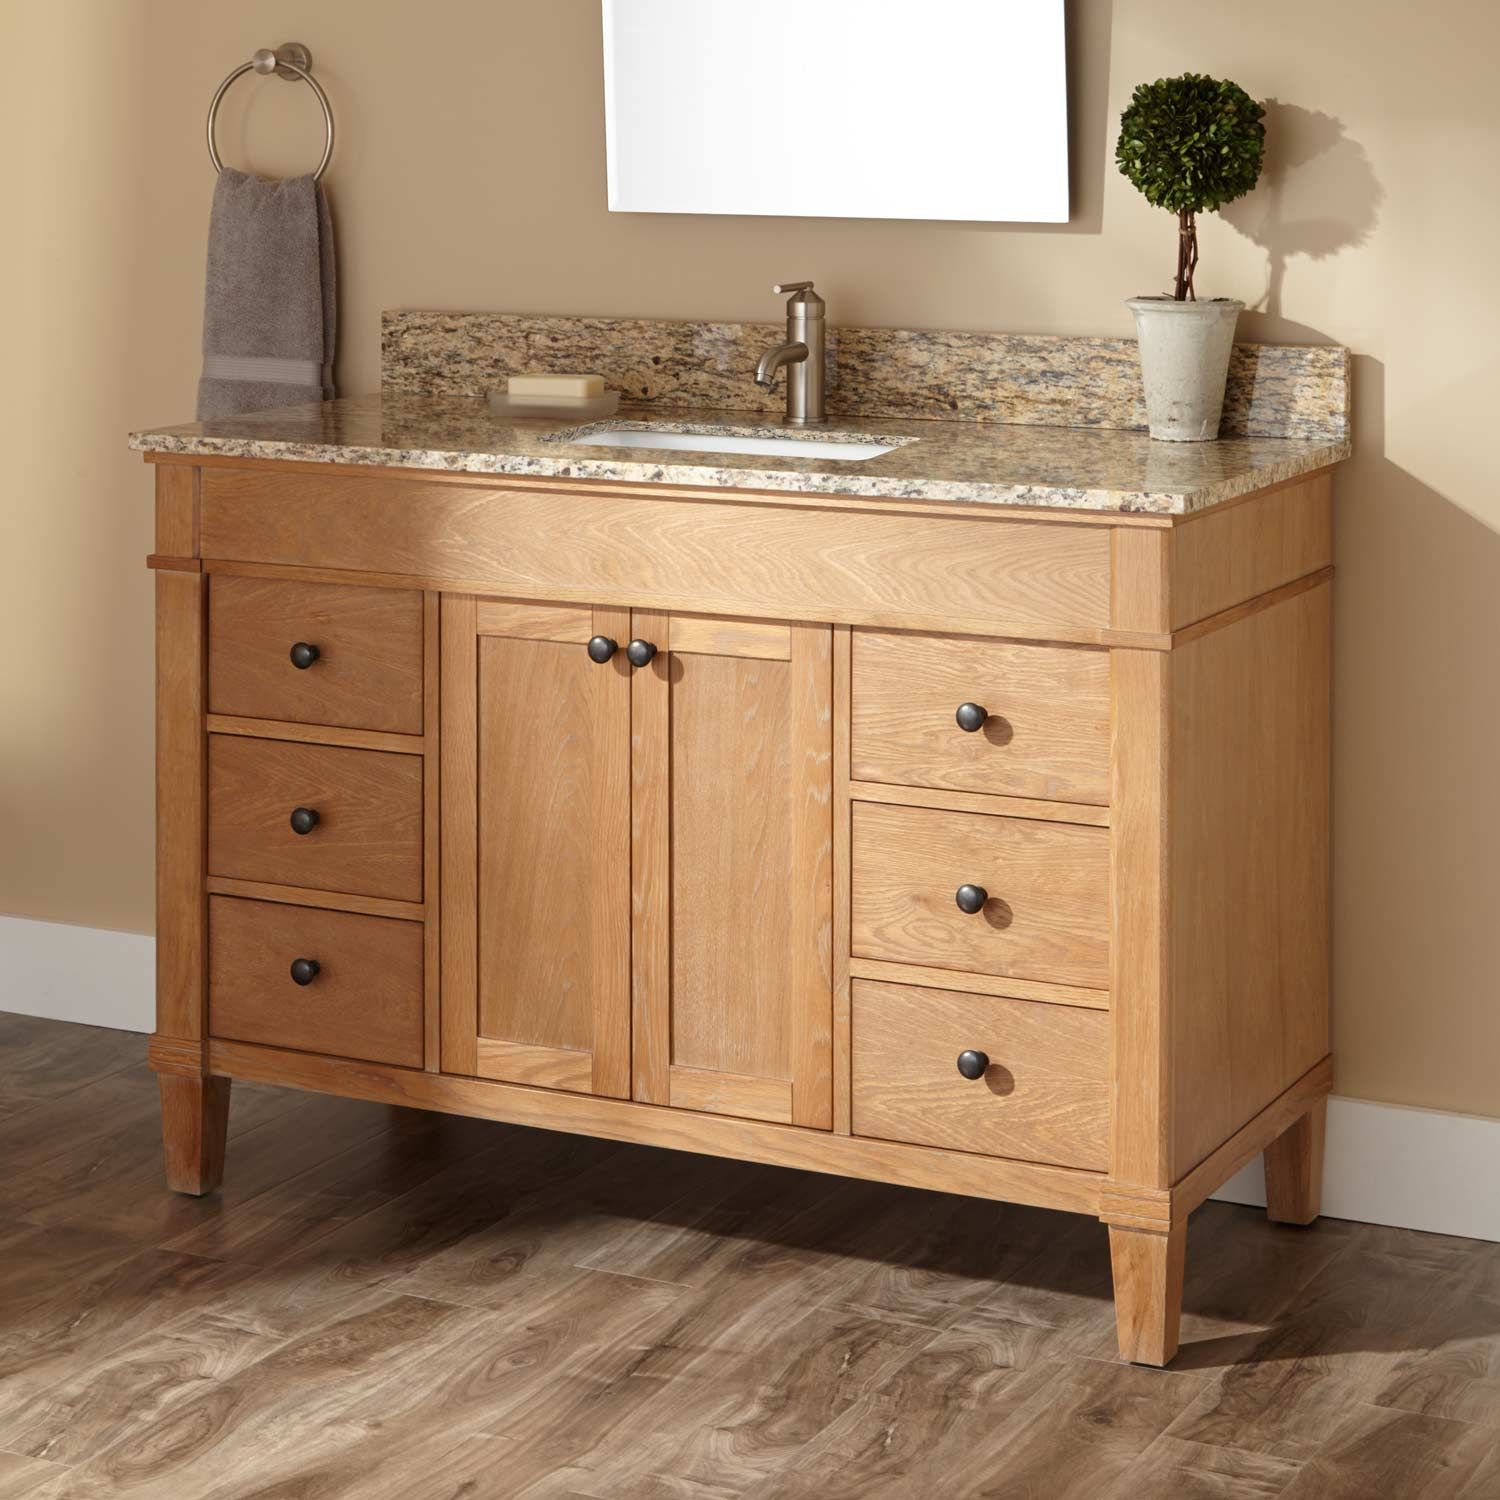 cool 48 white bathroom vanity online-Sensational 48 White Bathroom Vanity Gallery